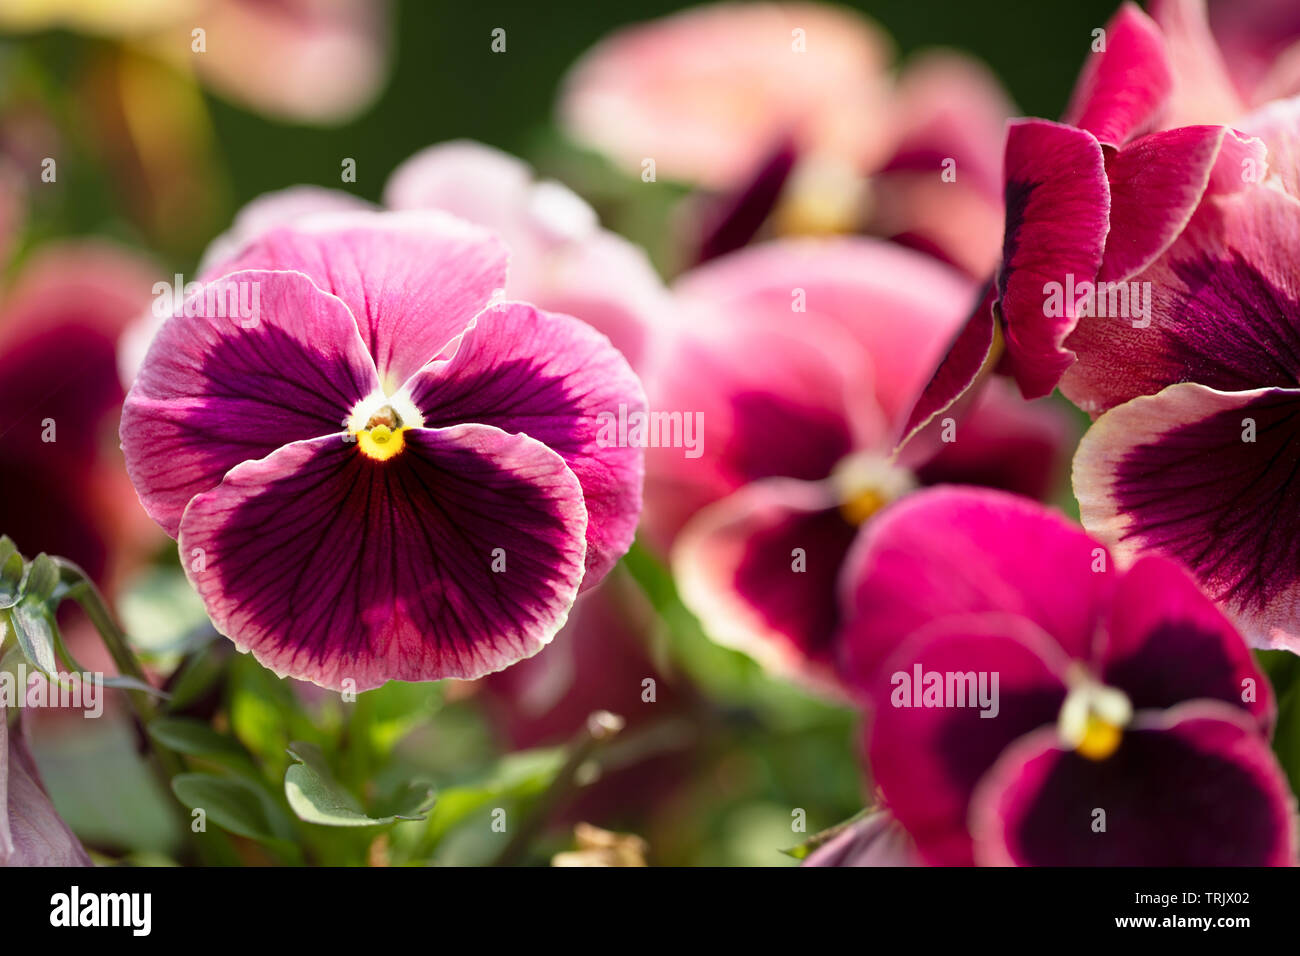 Close up of bright magenta pansy with deep purple blotch and yellow center Stock Photo